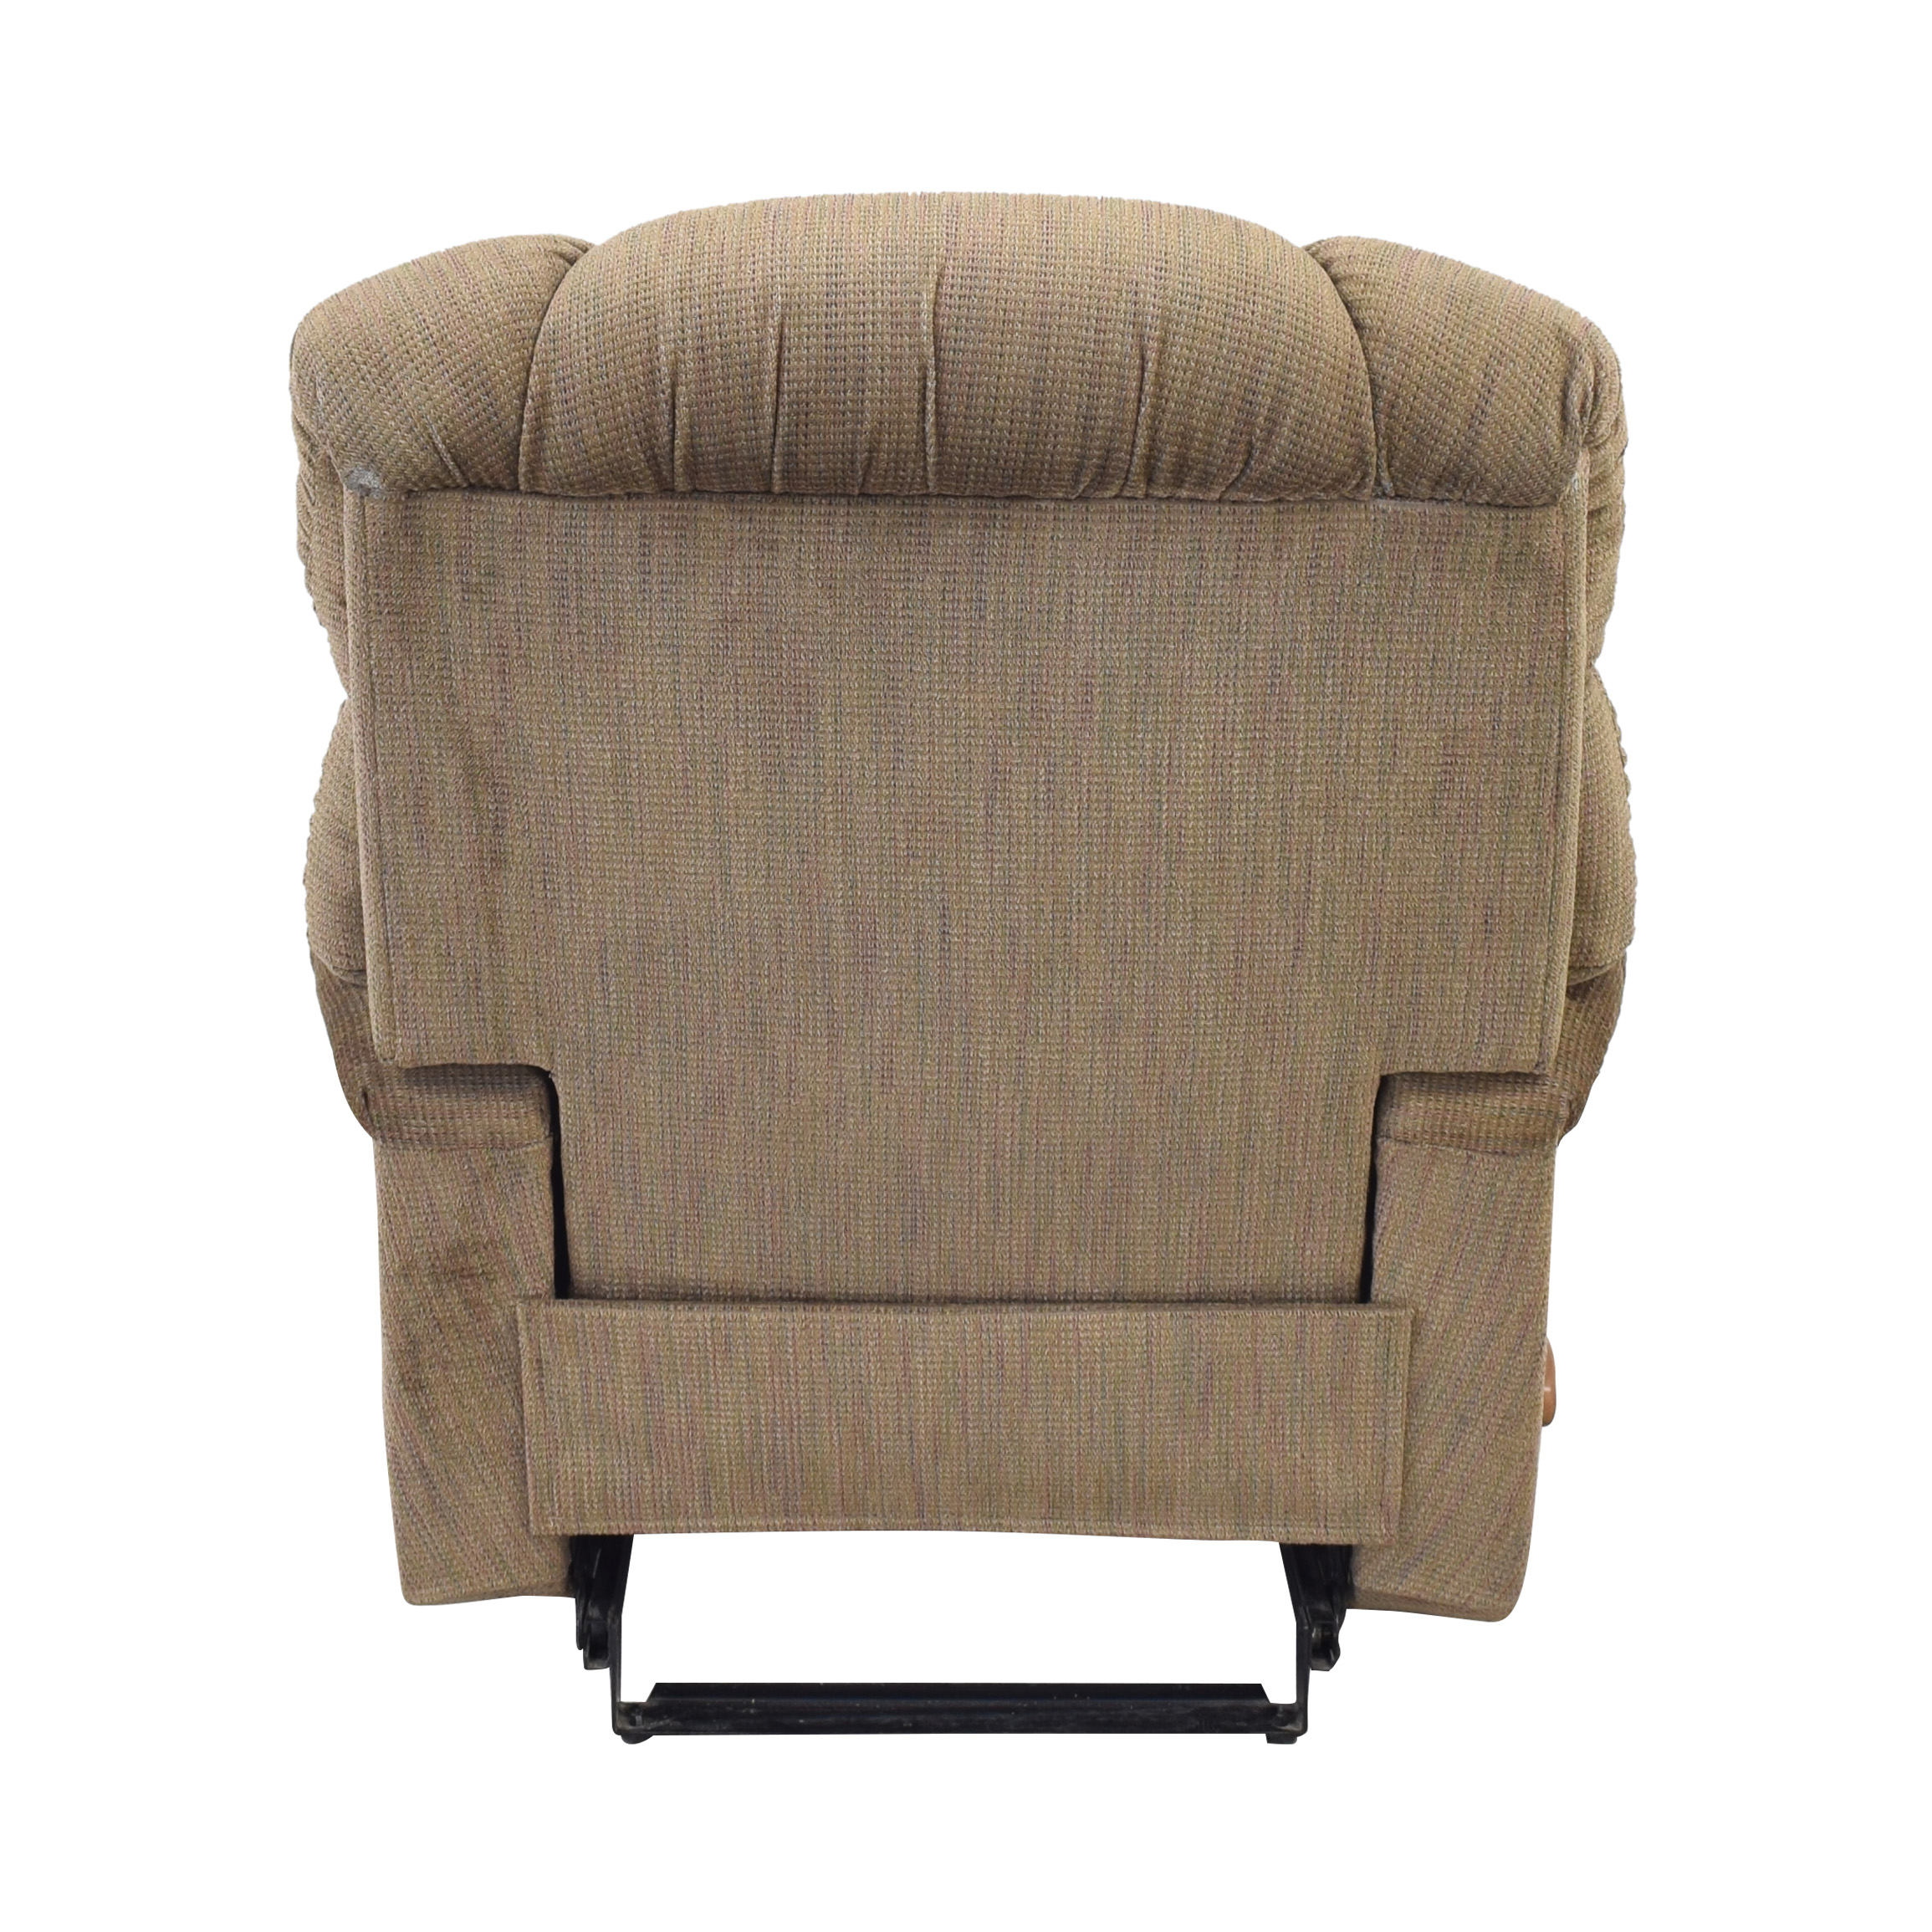 La-Z-Boy La-Z-Boy Recliner for sale